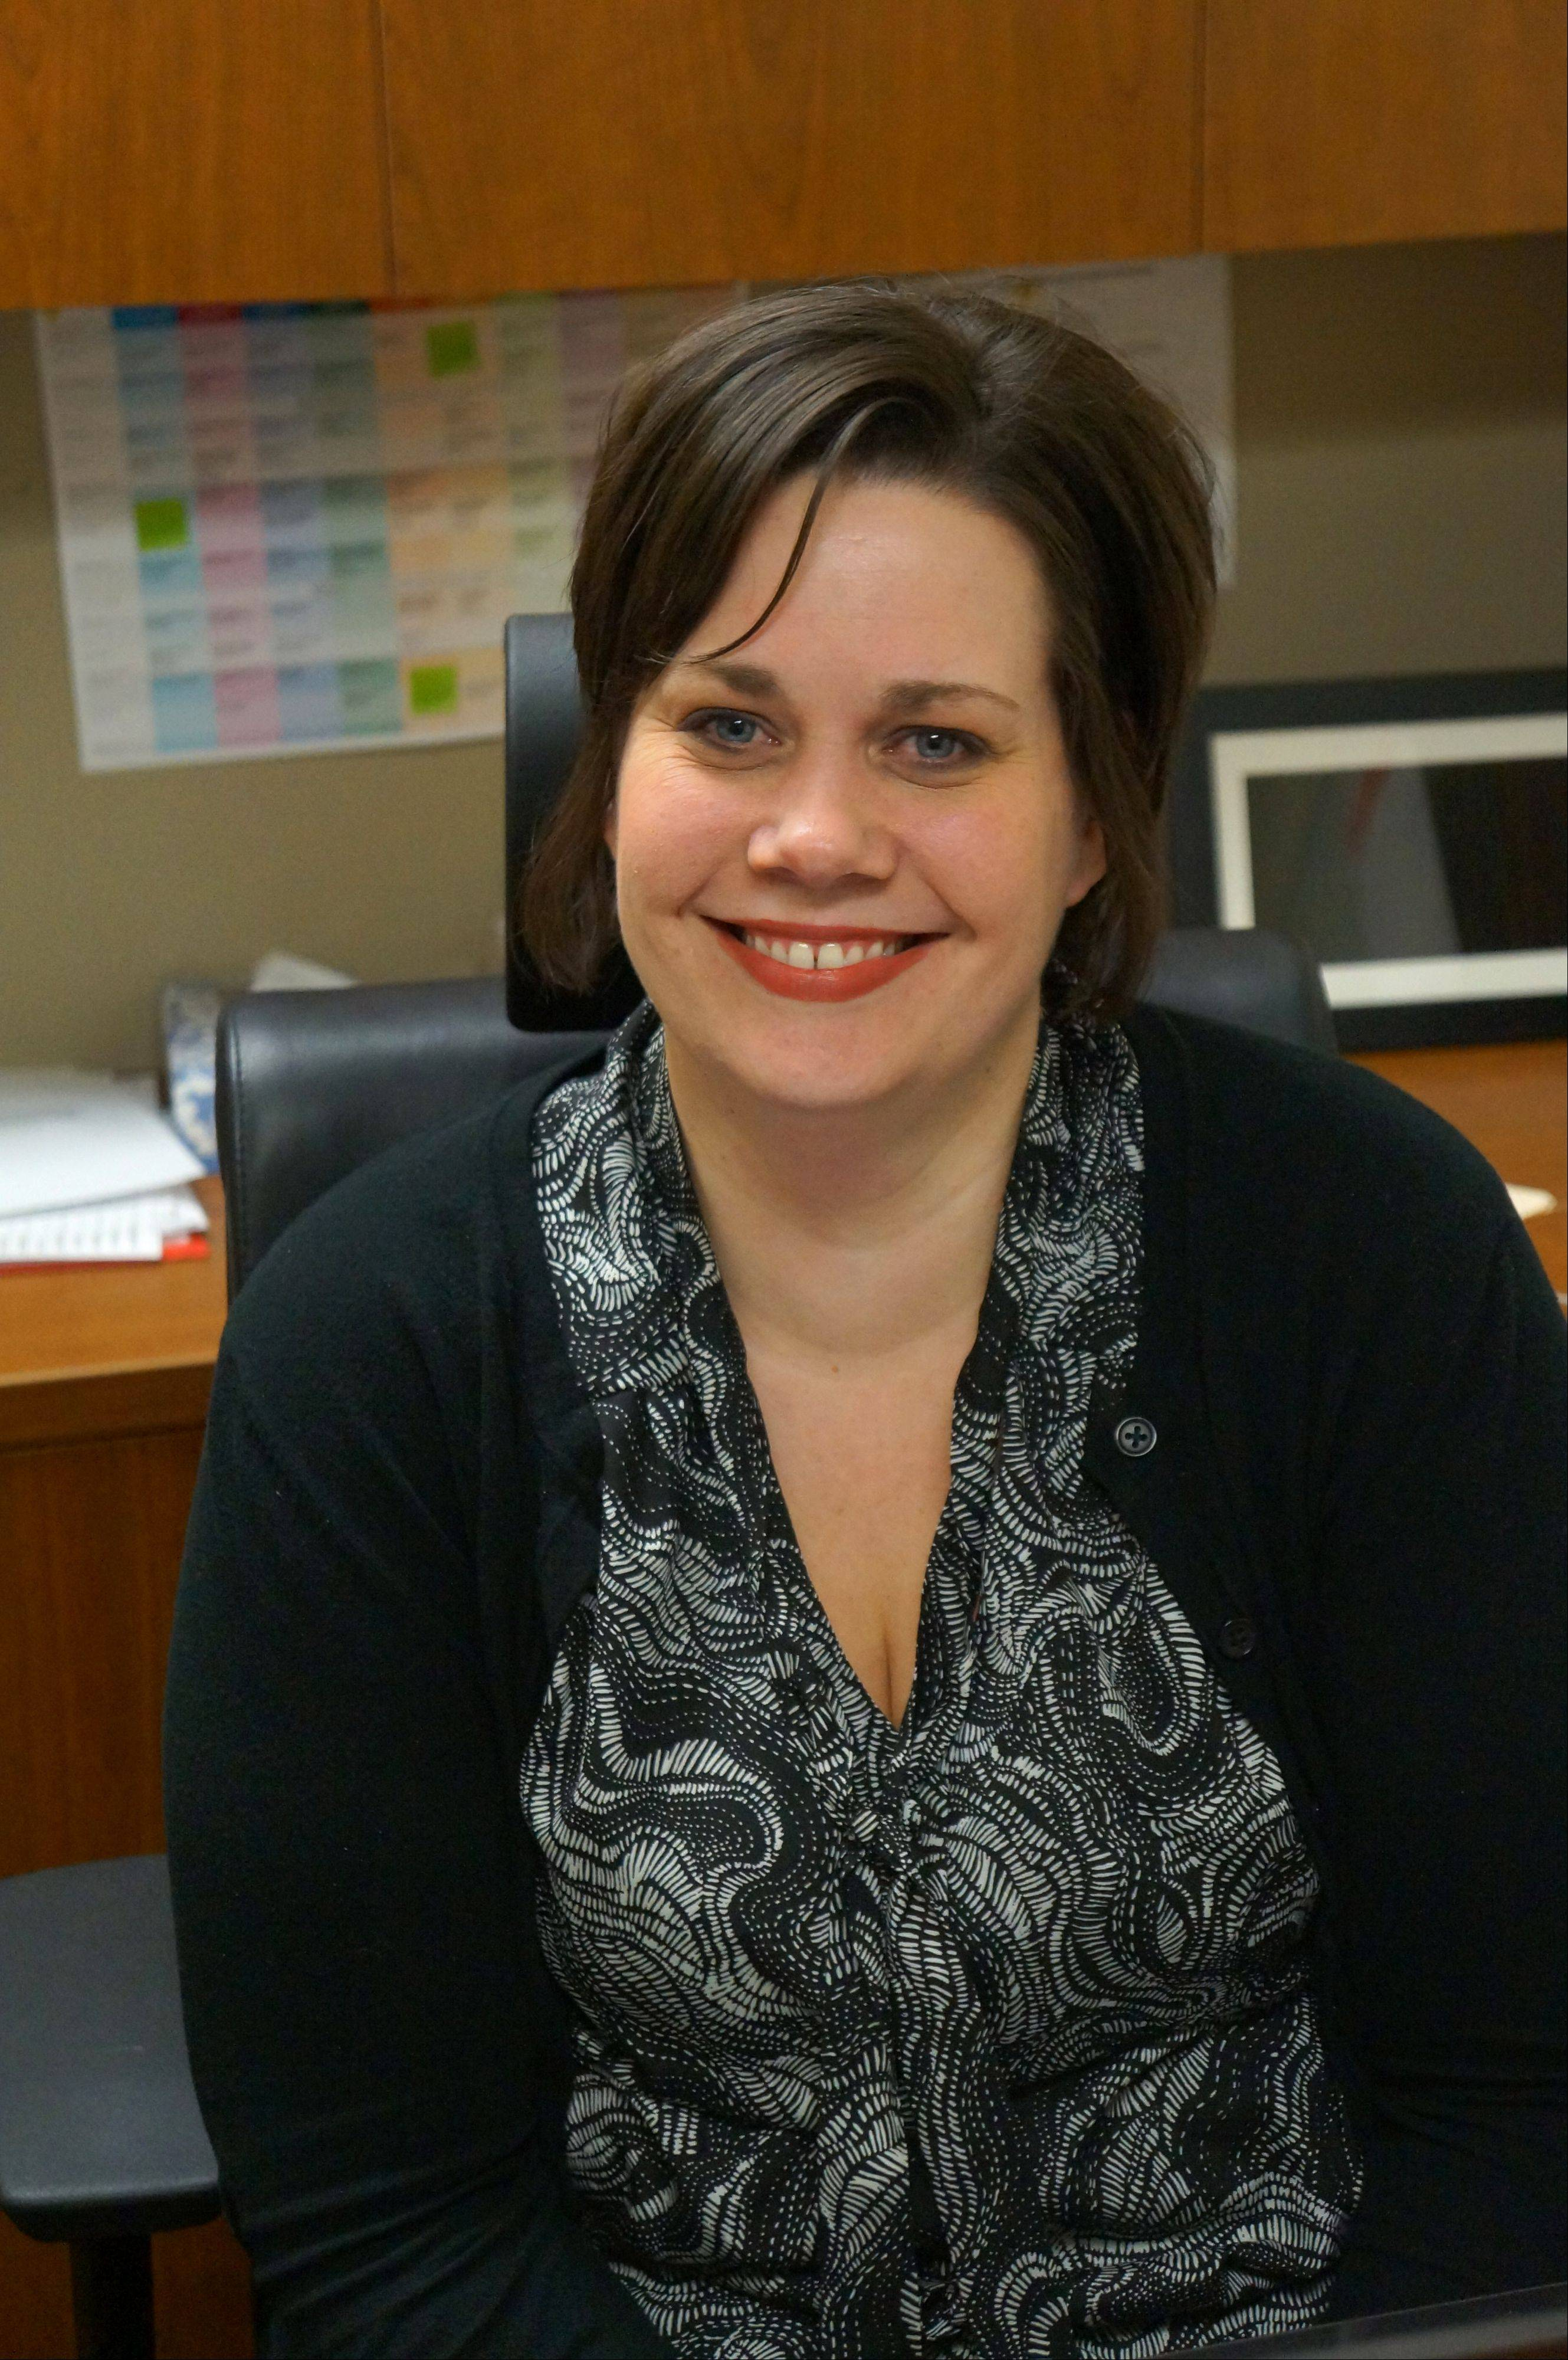 Joanne Smith of Elburn will be the new principal of Batavia High School.